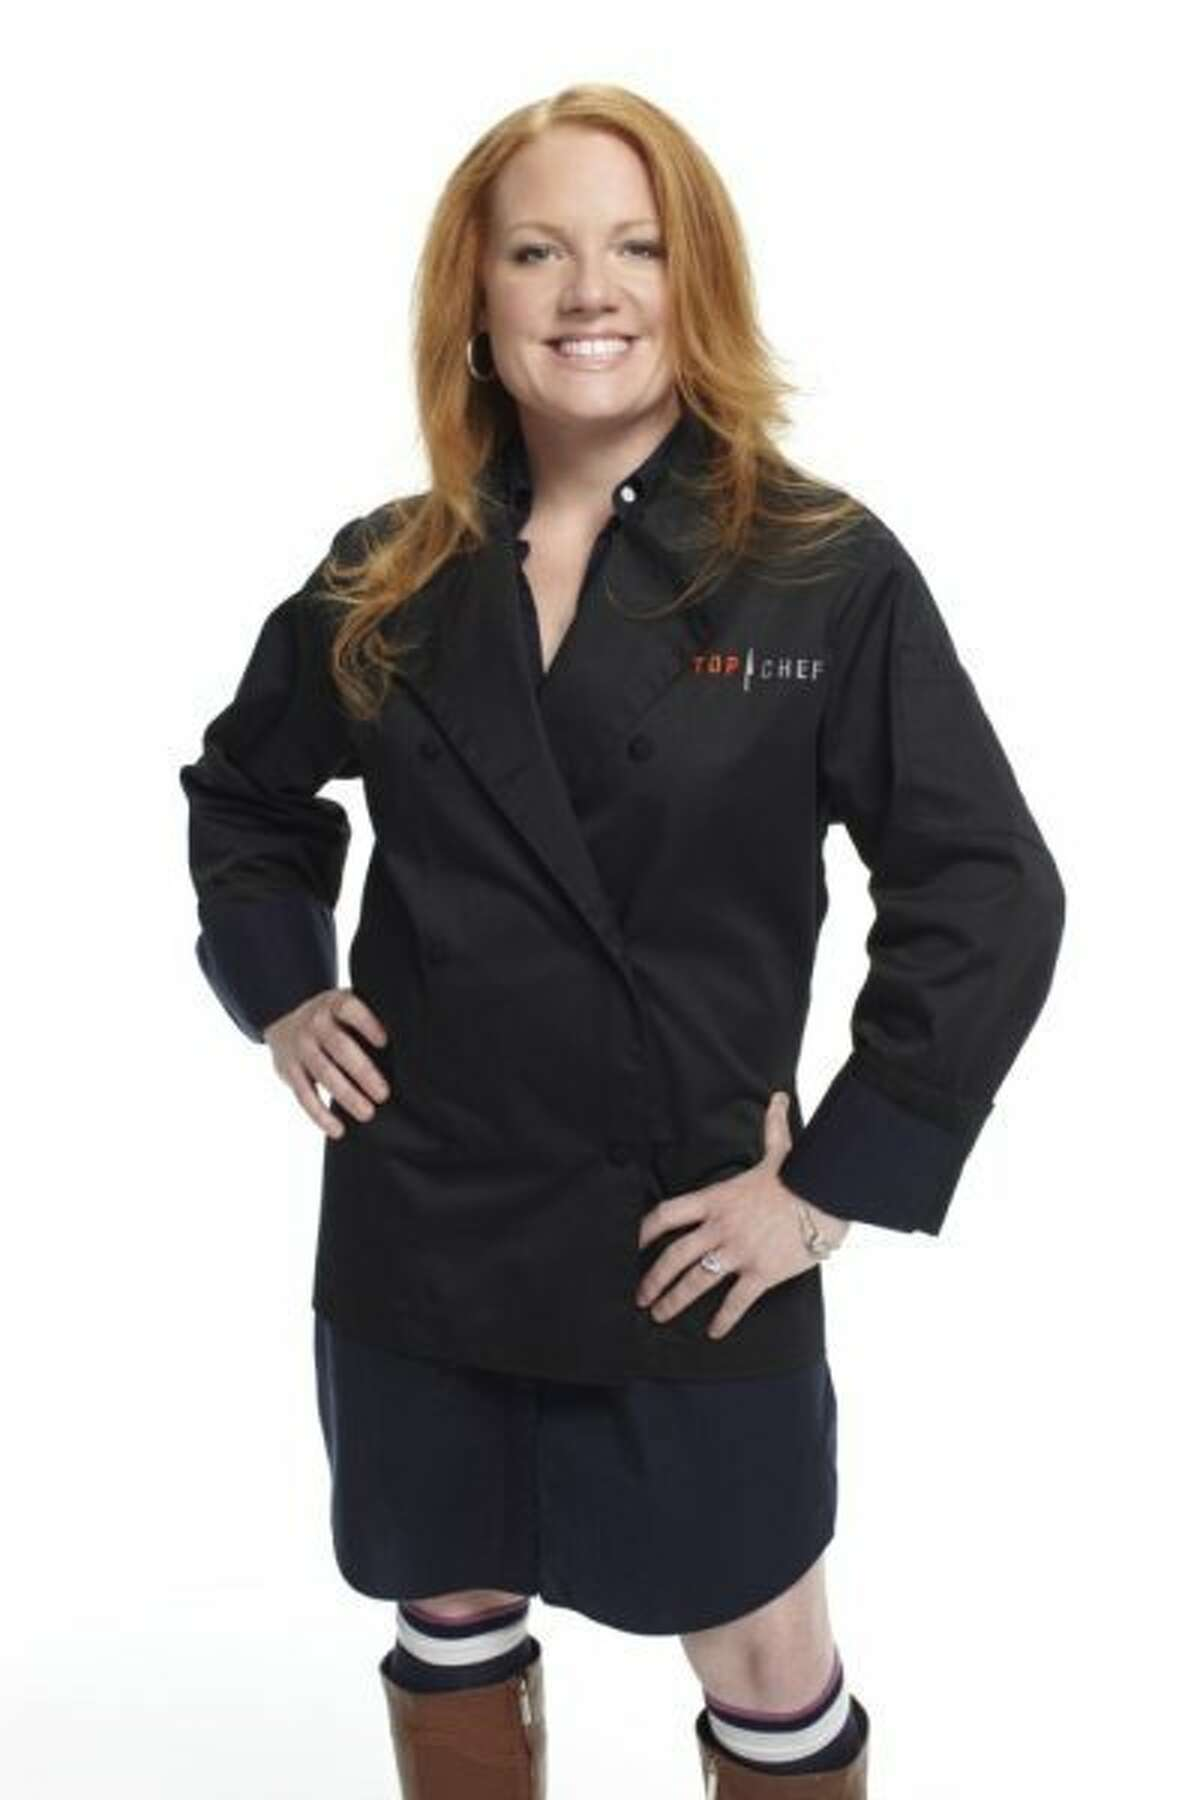 Tiffani Faison, Season 1: Tiffani went up against Harold Dieterle in the Season 1 finale in Las Vegas. Although Tom Colicchio has said in the past that her artichoke risotto was one of the best dishes he's ever eaten on the show, the fact that she presented duos for each course came back to bite her, and Harold took home the title.